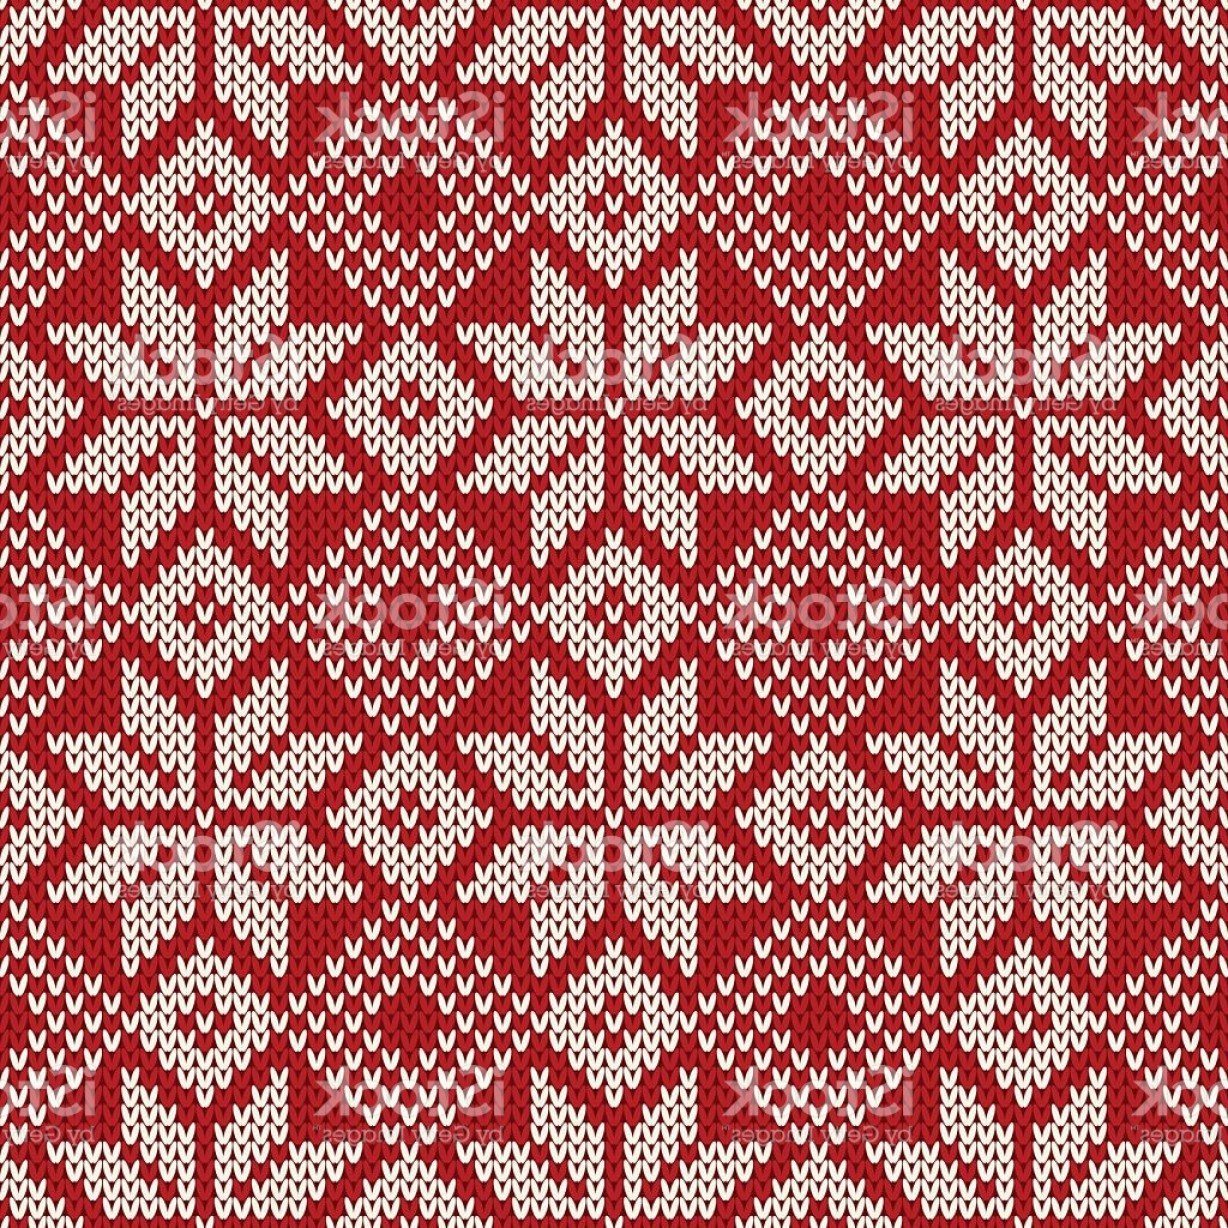 Christmas Sweater Design Vector: Christmas Sweater Design Seamless Pattern Gm